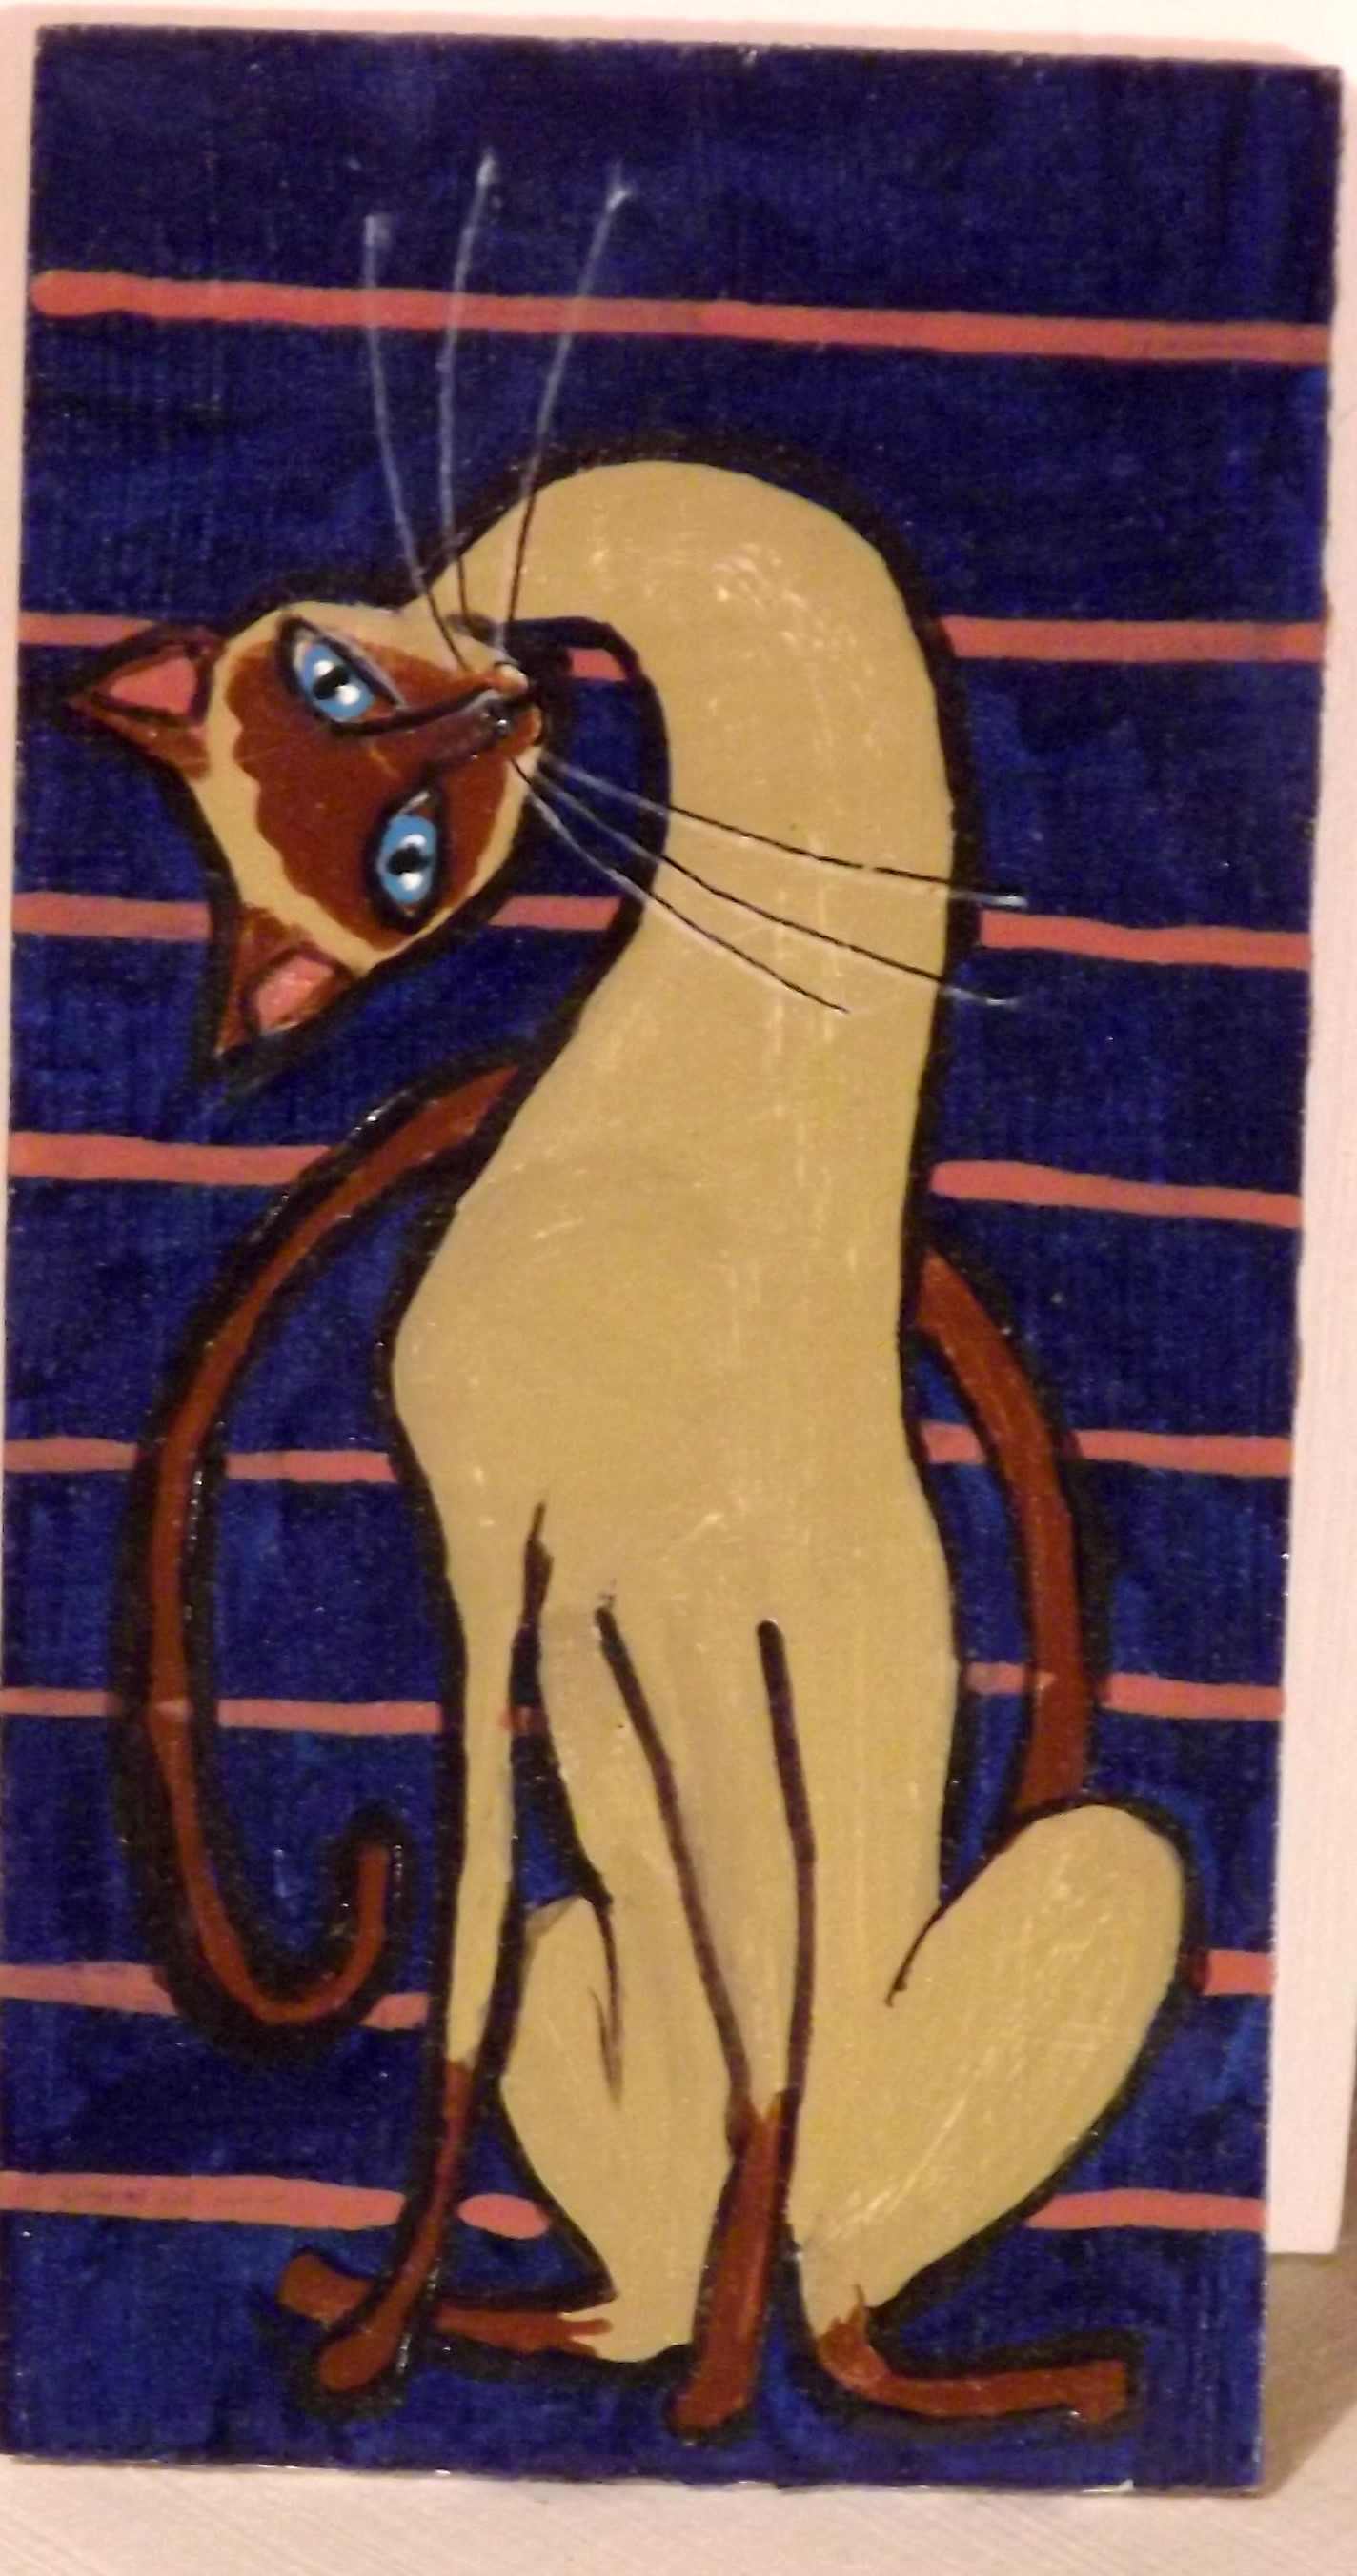 Sideways Siamese Cat on wood 2.5 by 4.5 inches